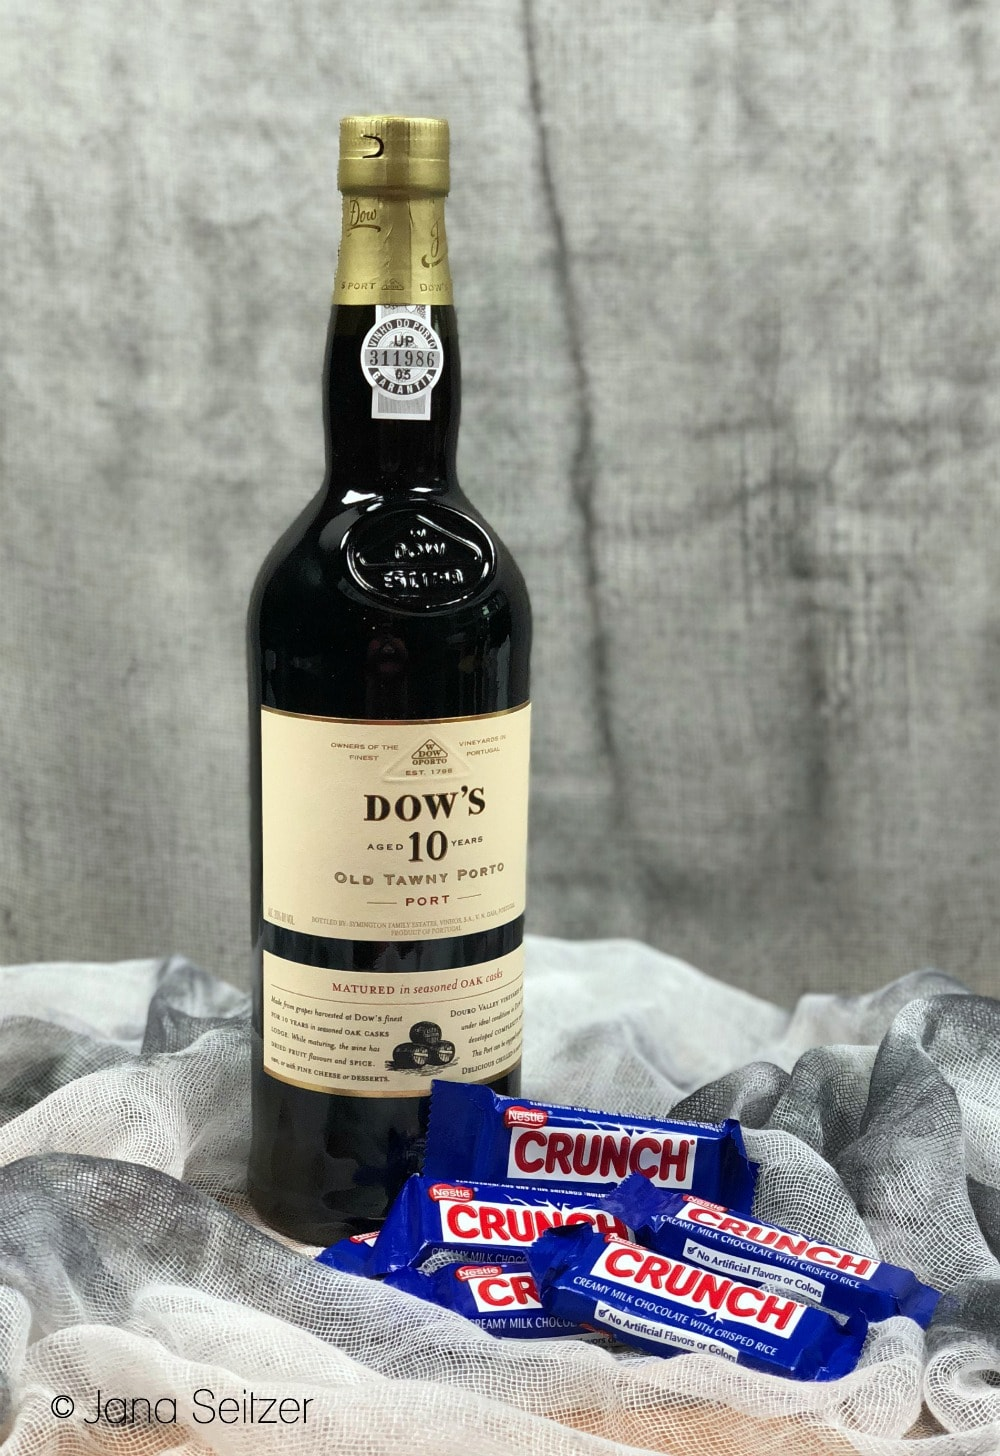 dows 10 year old tawny port nestle crunch - How to Pair Halloween Candy with Port